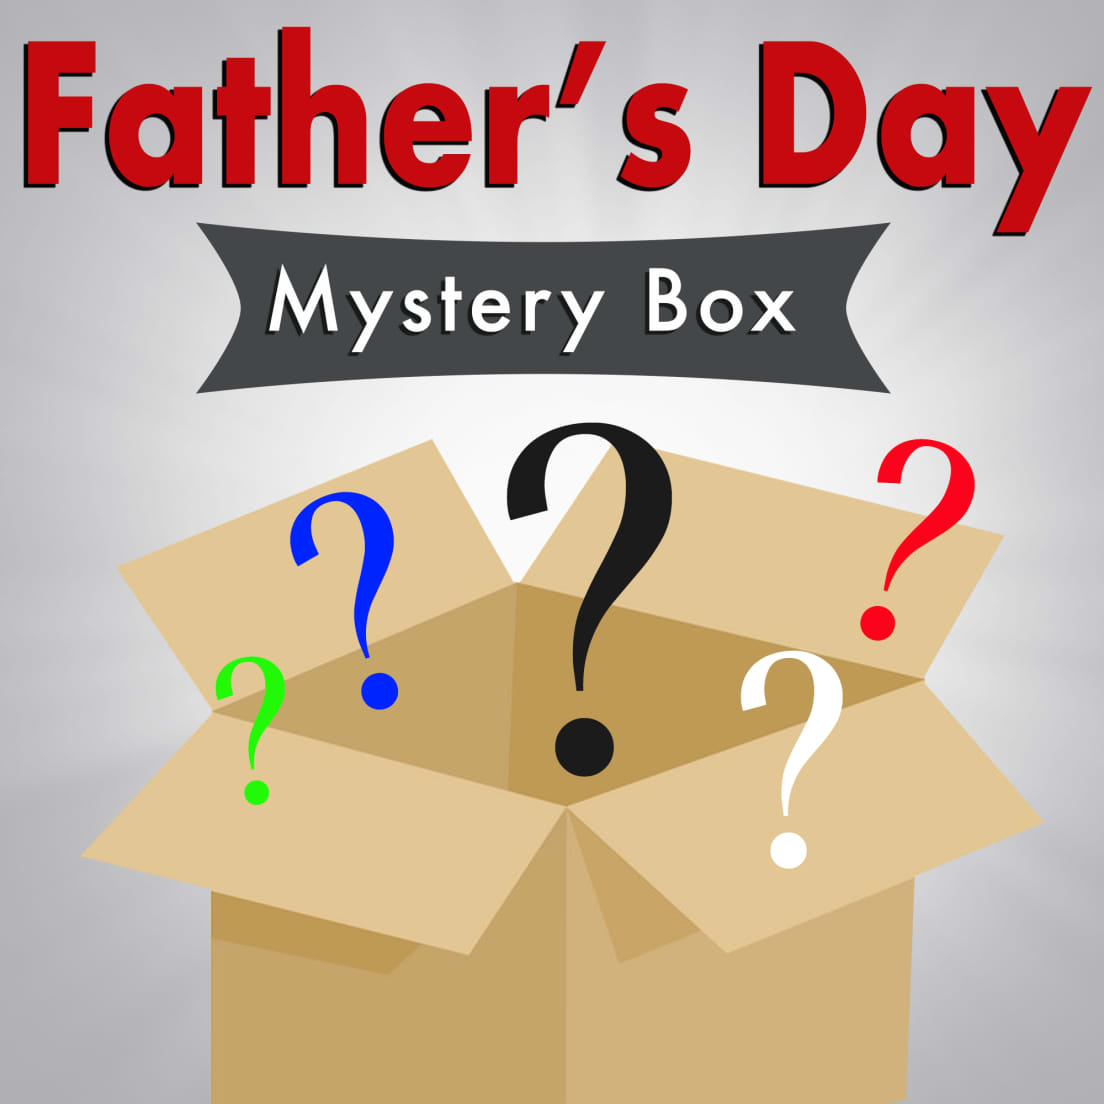 1d89598c676 Special Edition: Father's Day 10 Item Mystery Box